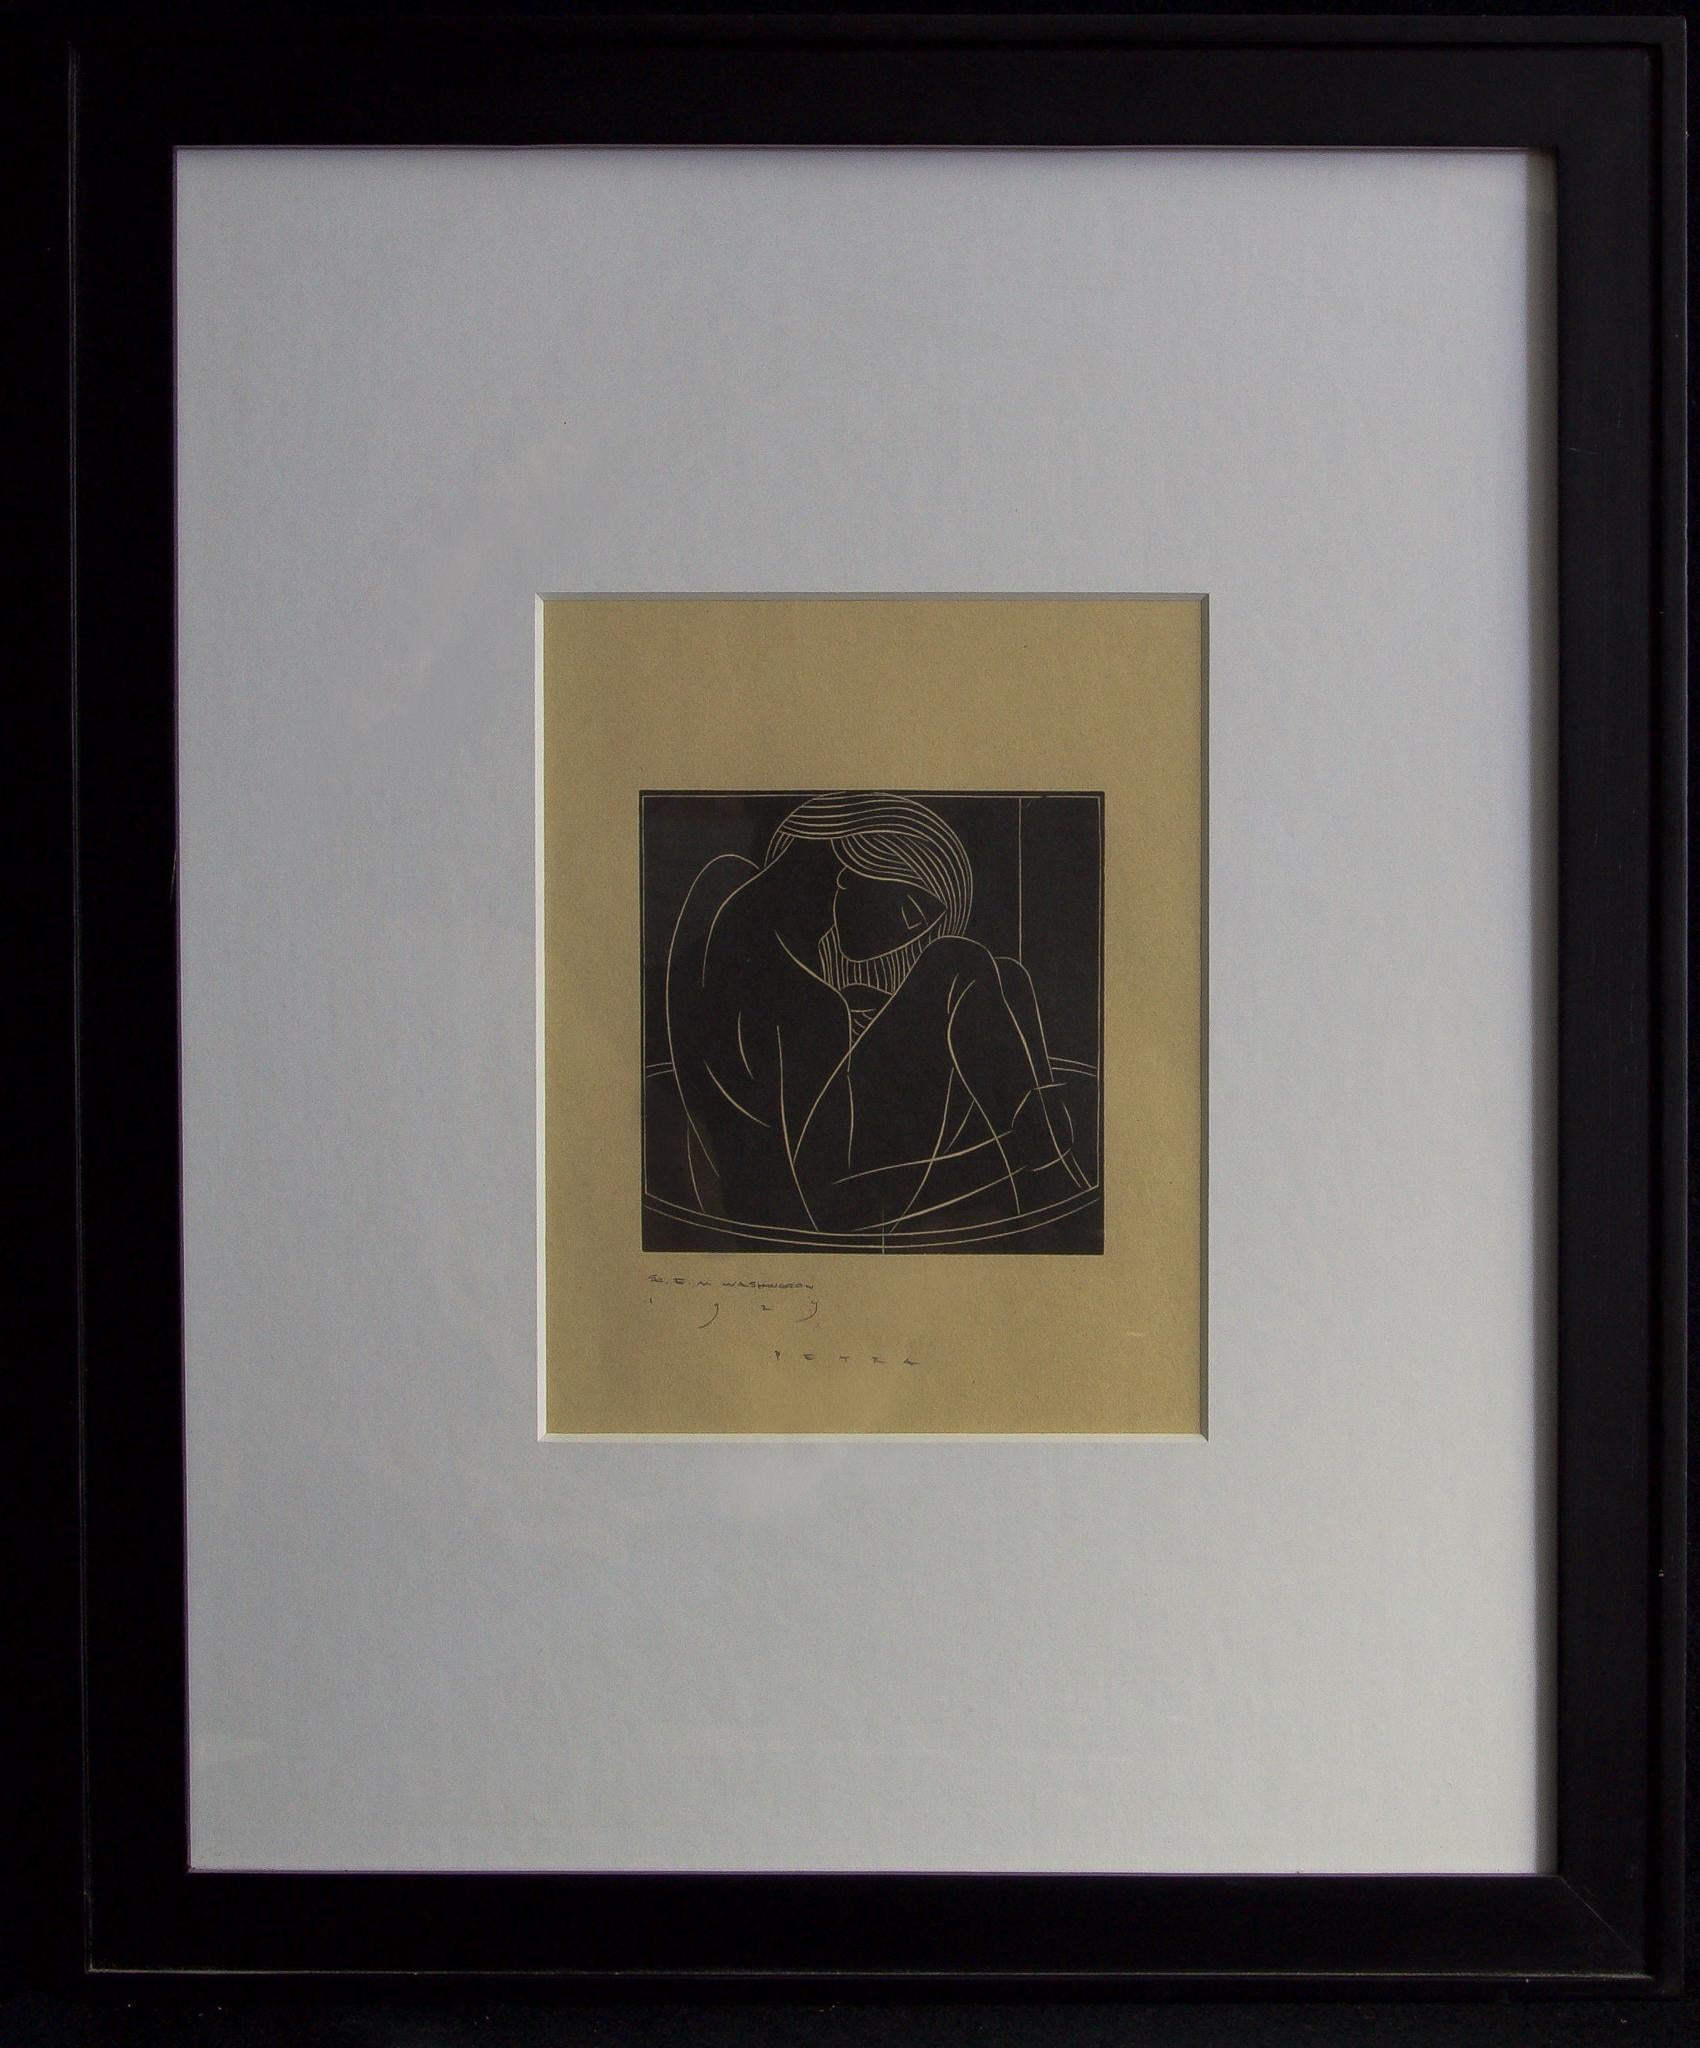 Petra-Framed Woodblock Print. Signed and Dated by the Artist